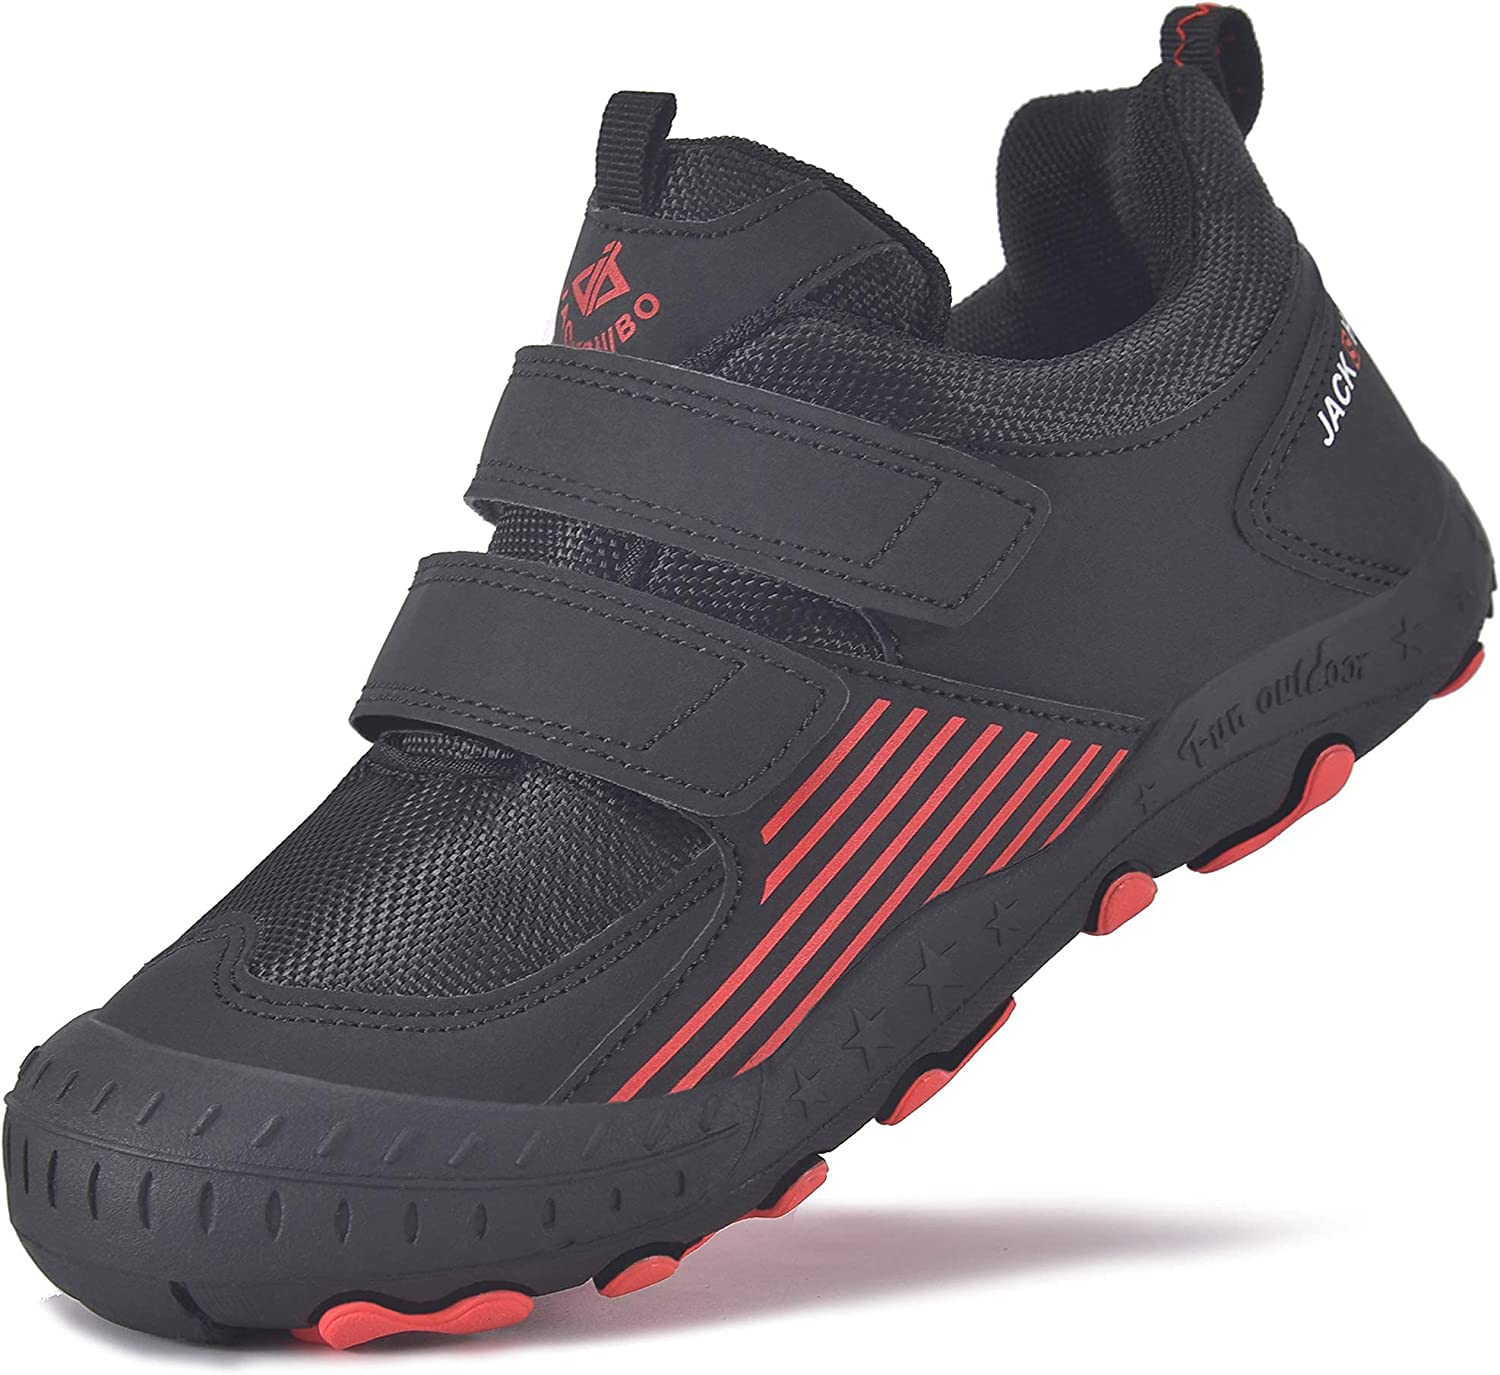 MARITONY Kids Hiking Max 44% OFF Shoes for Boys Girls Light on Complete Free Shipping Sneakers Slip